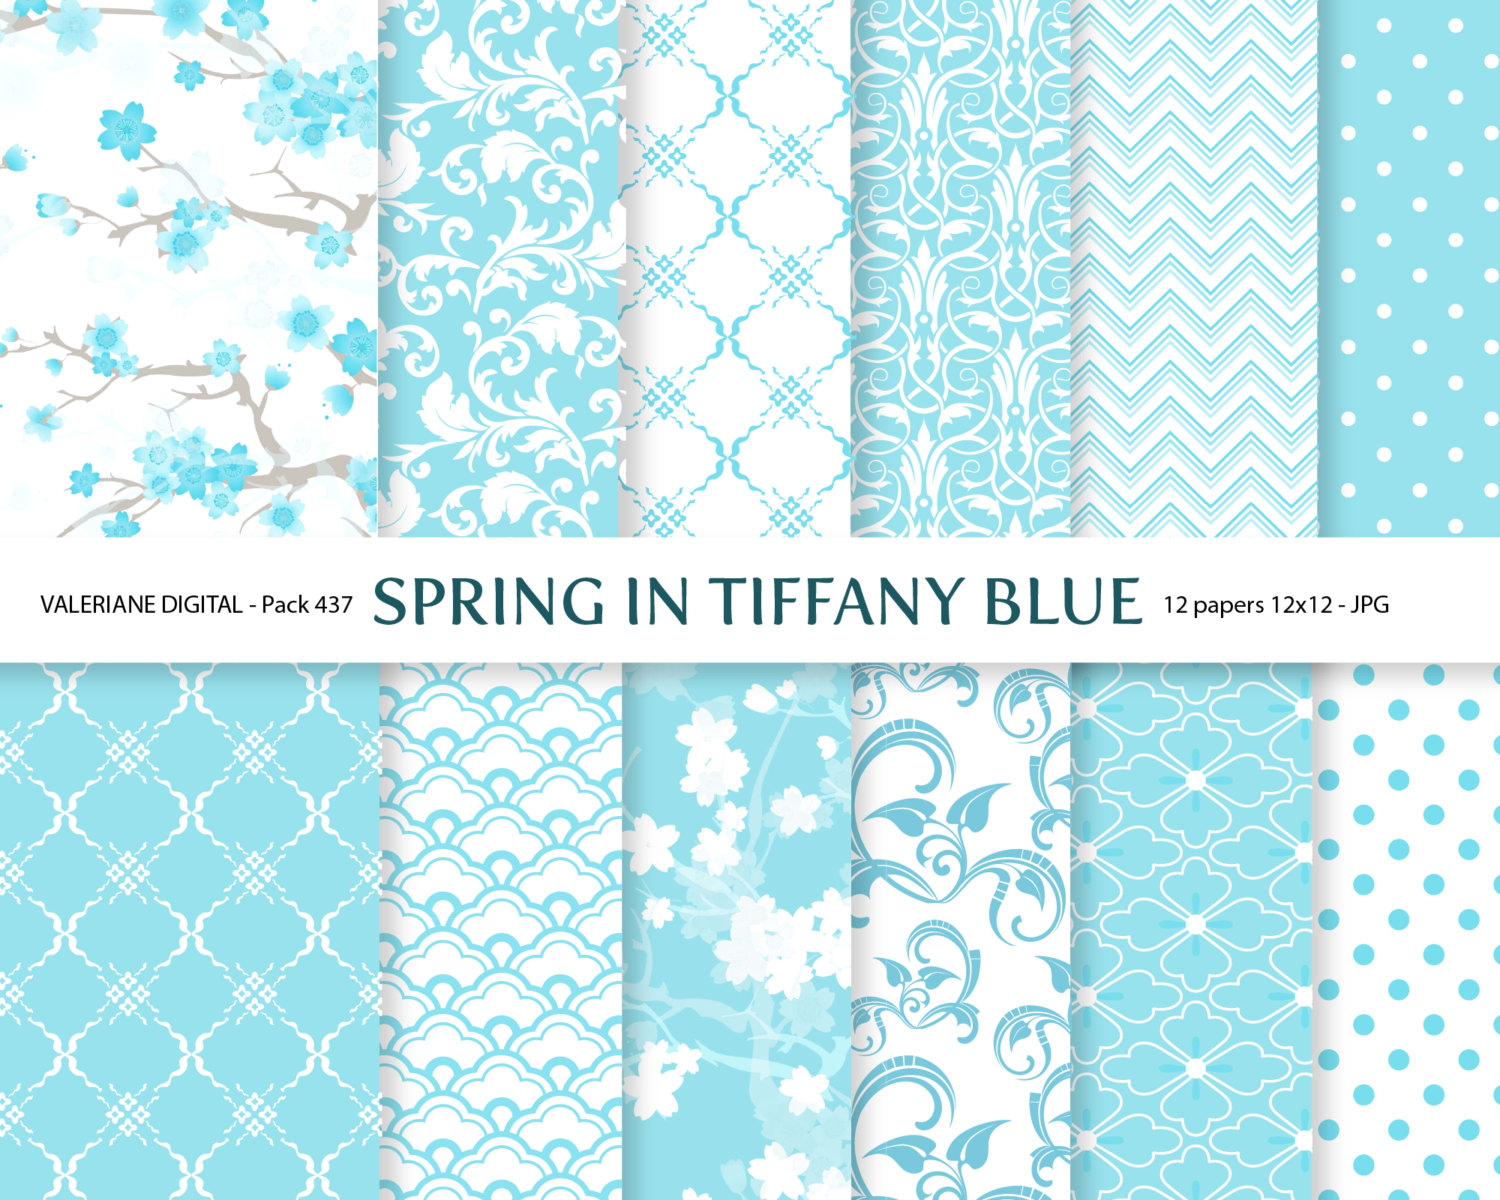 tiffany thesis Free essay: the tiffany & company case analysis introduction tiffany & co holds the leading position in the fine jewelery industry with a deep.